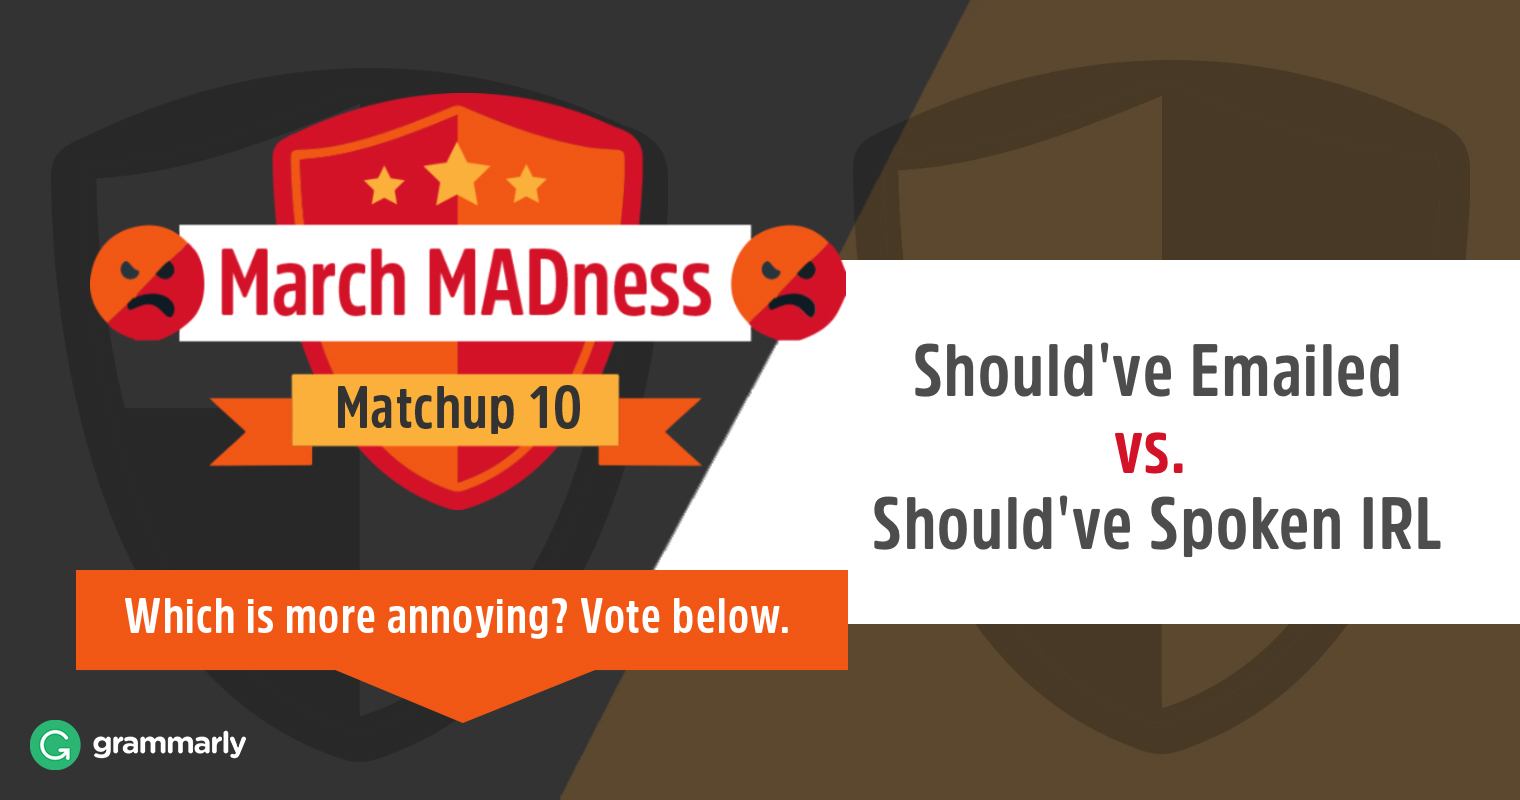 March MADness: Should've Emailed vs. Should've Spoken IRL image